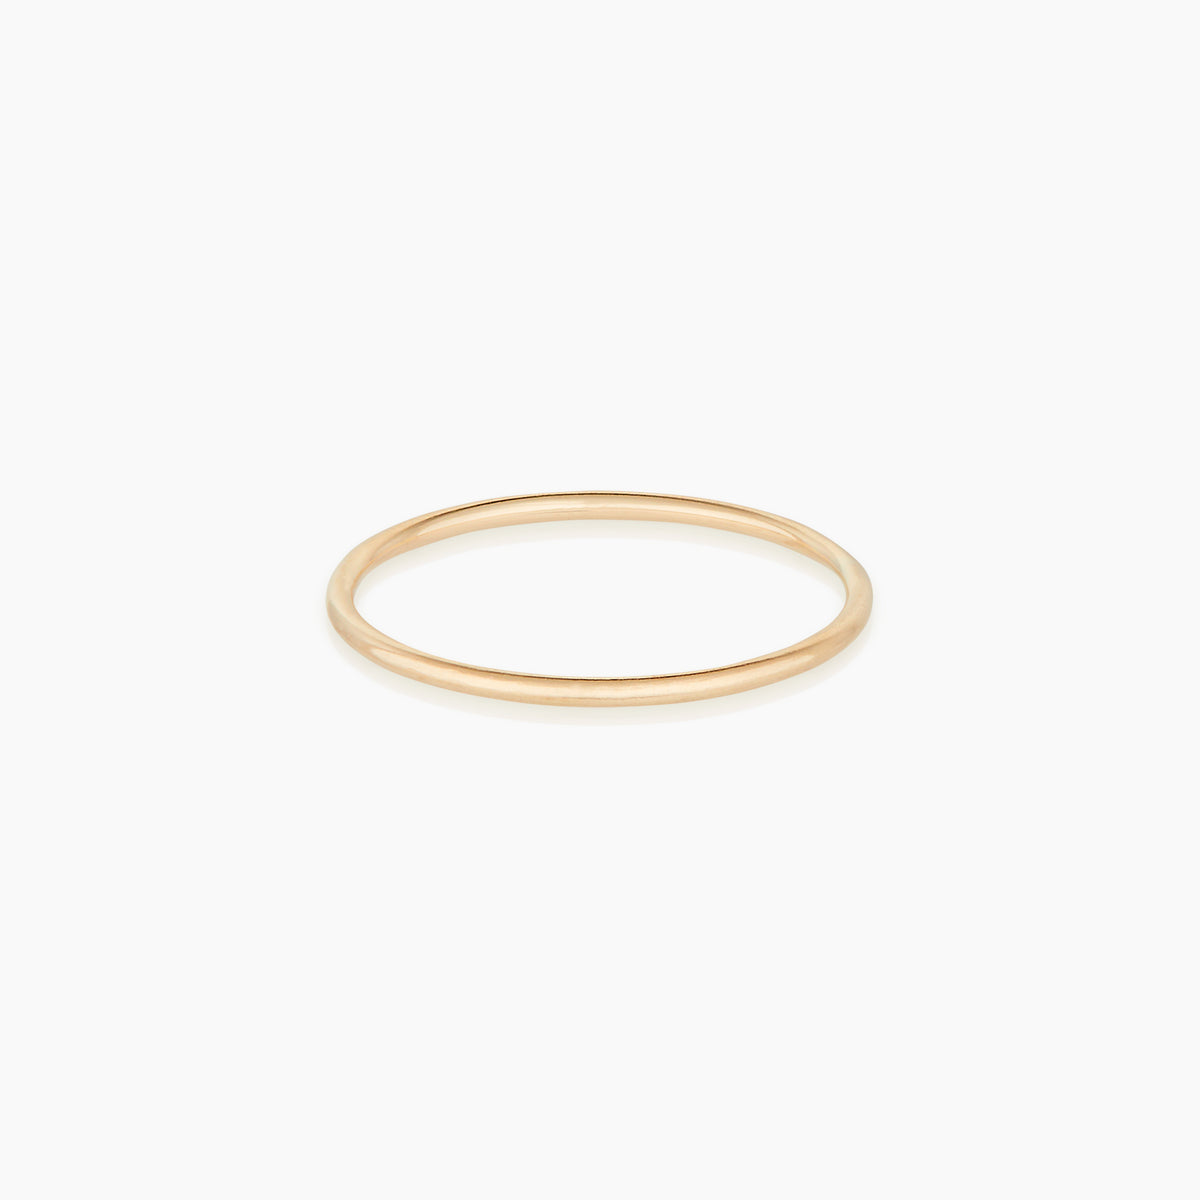 Image of delicate solid gold ring